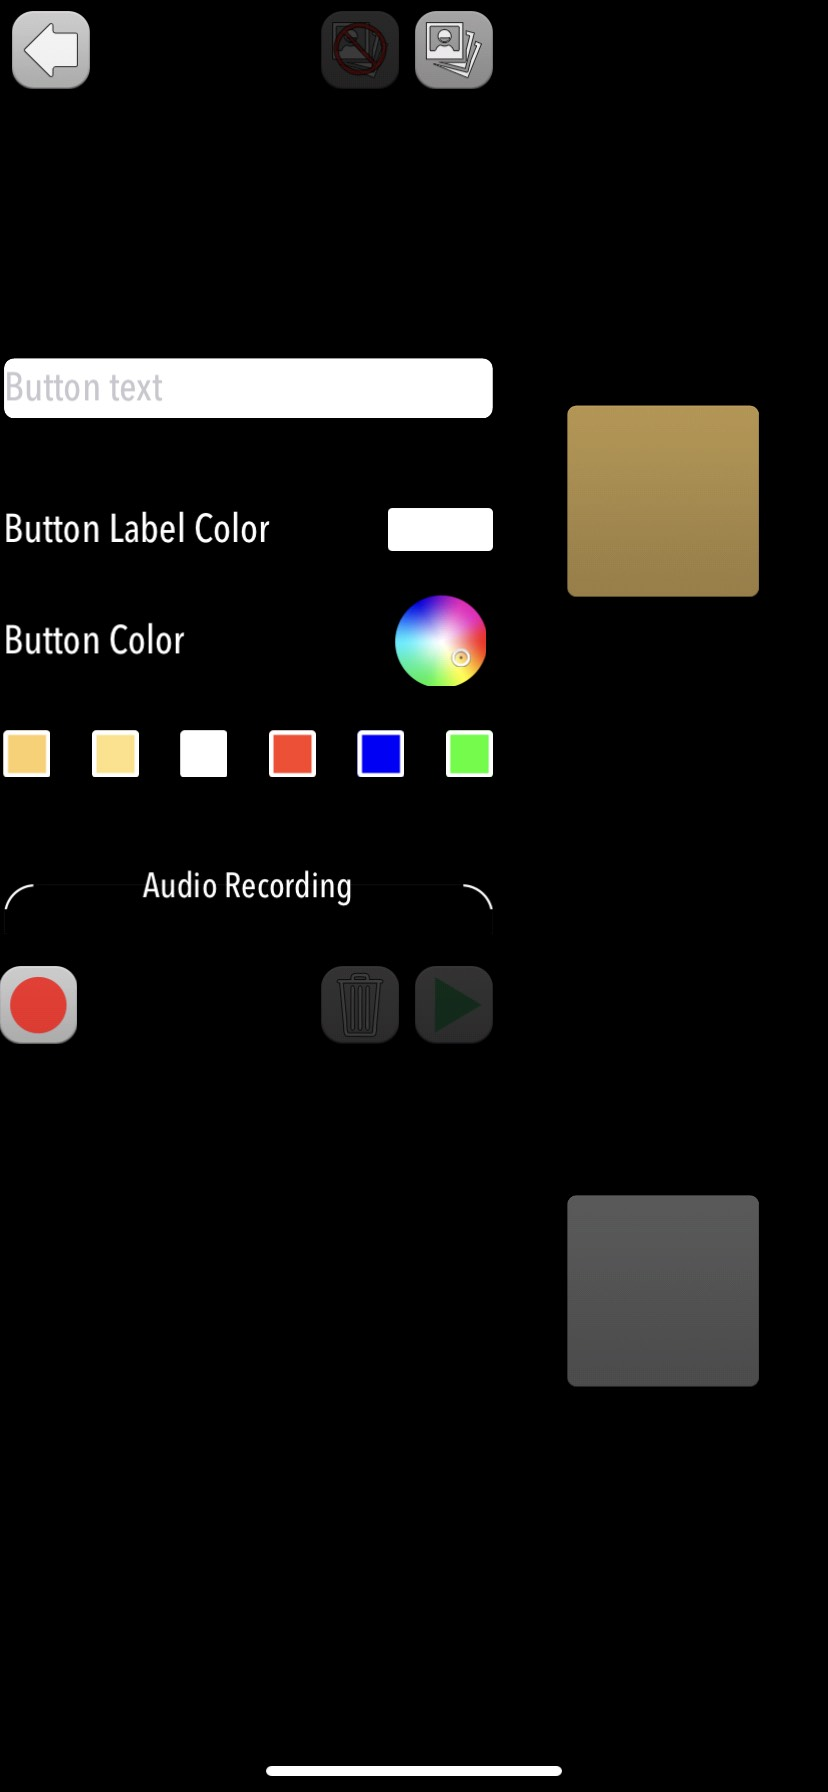 Screenshot of customization board for icon options: button text, color options, audio recording